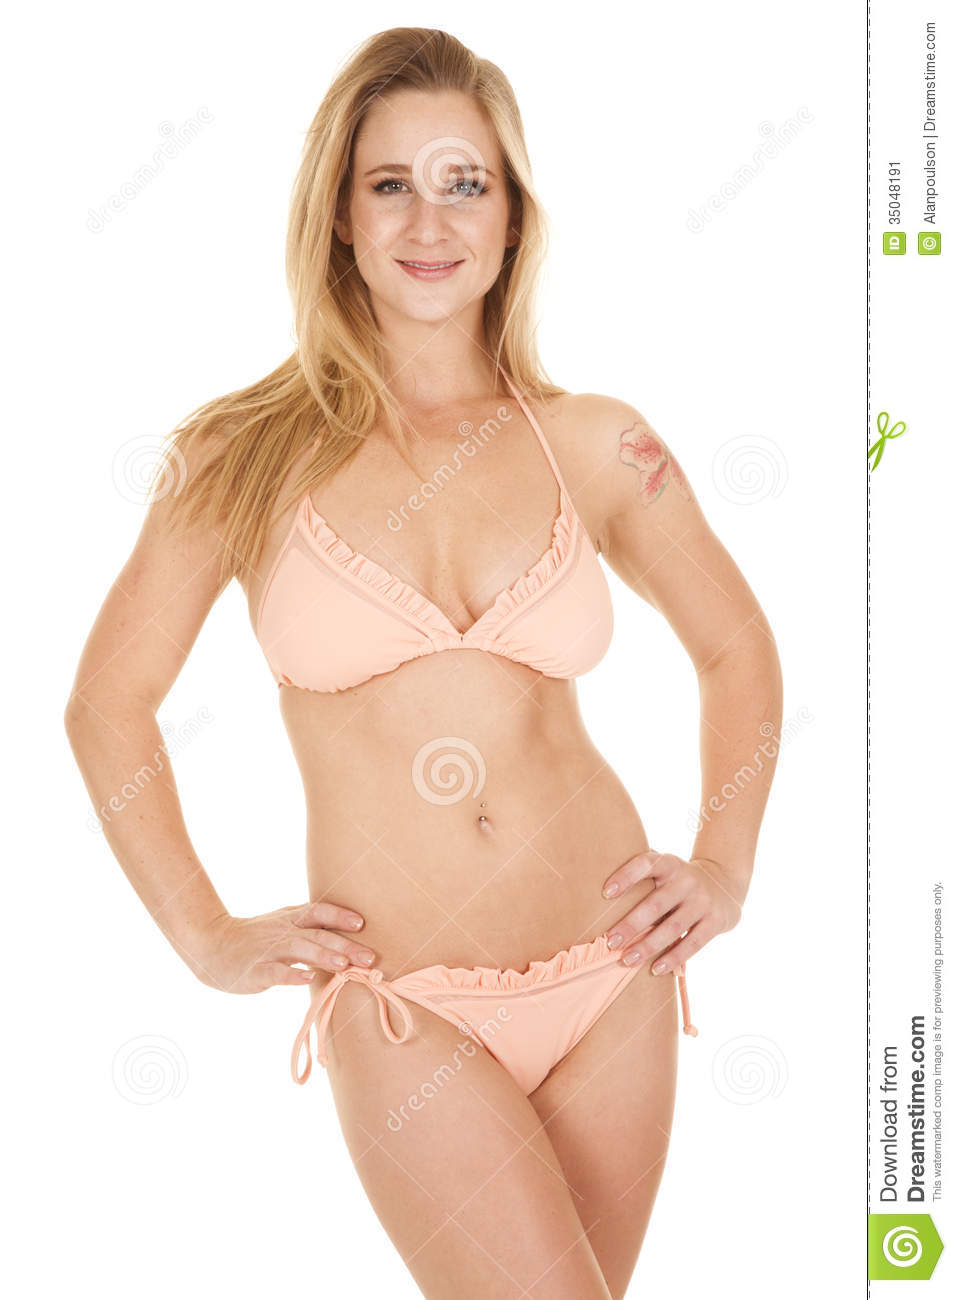 Bandage bikini set Push up padded swimwear swimsuit. 1 x Sexy Bikini. Color: Black Peach Pink (As pictures show). What You Get No exception.